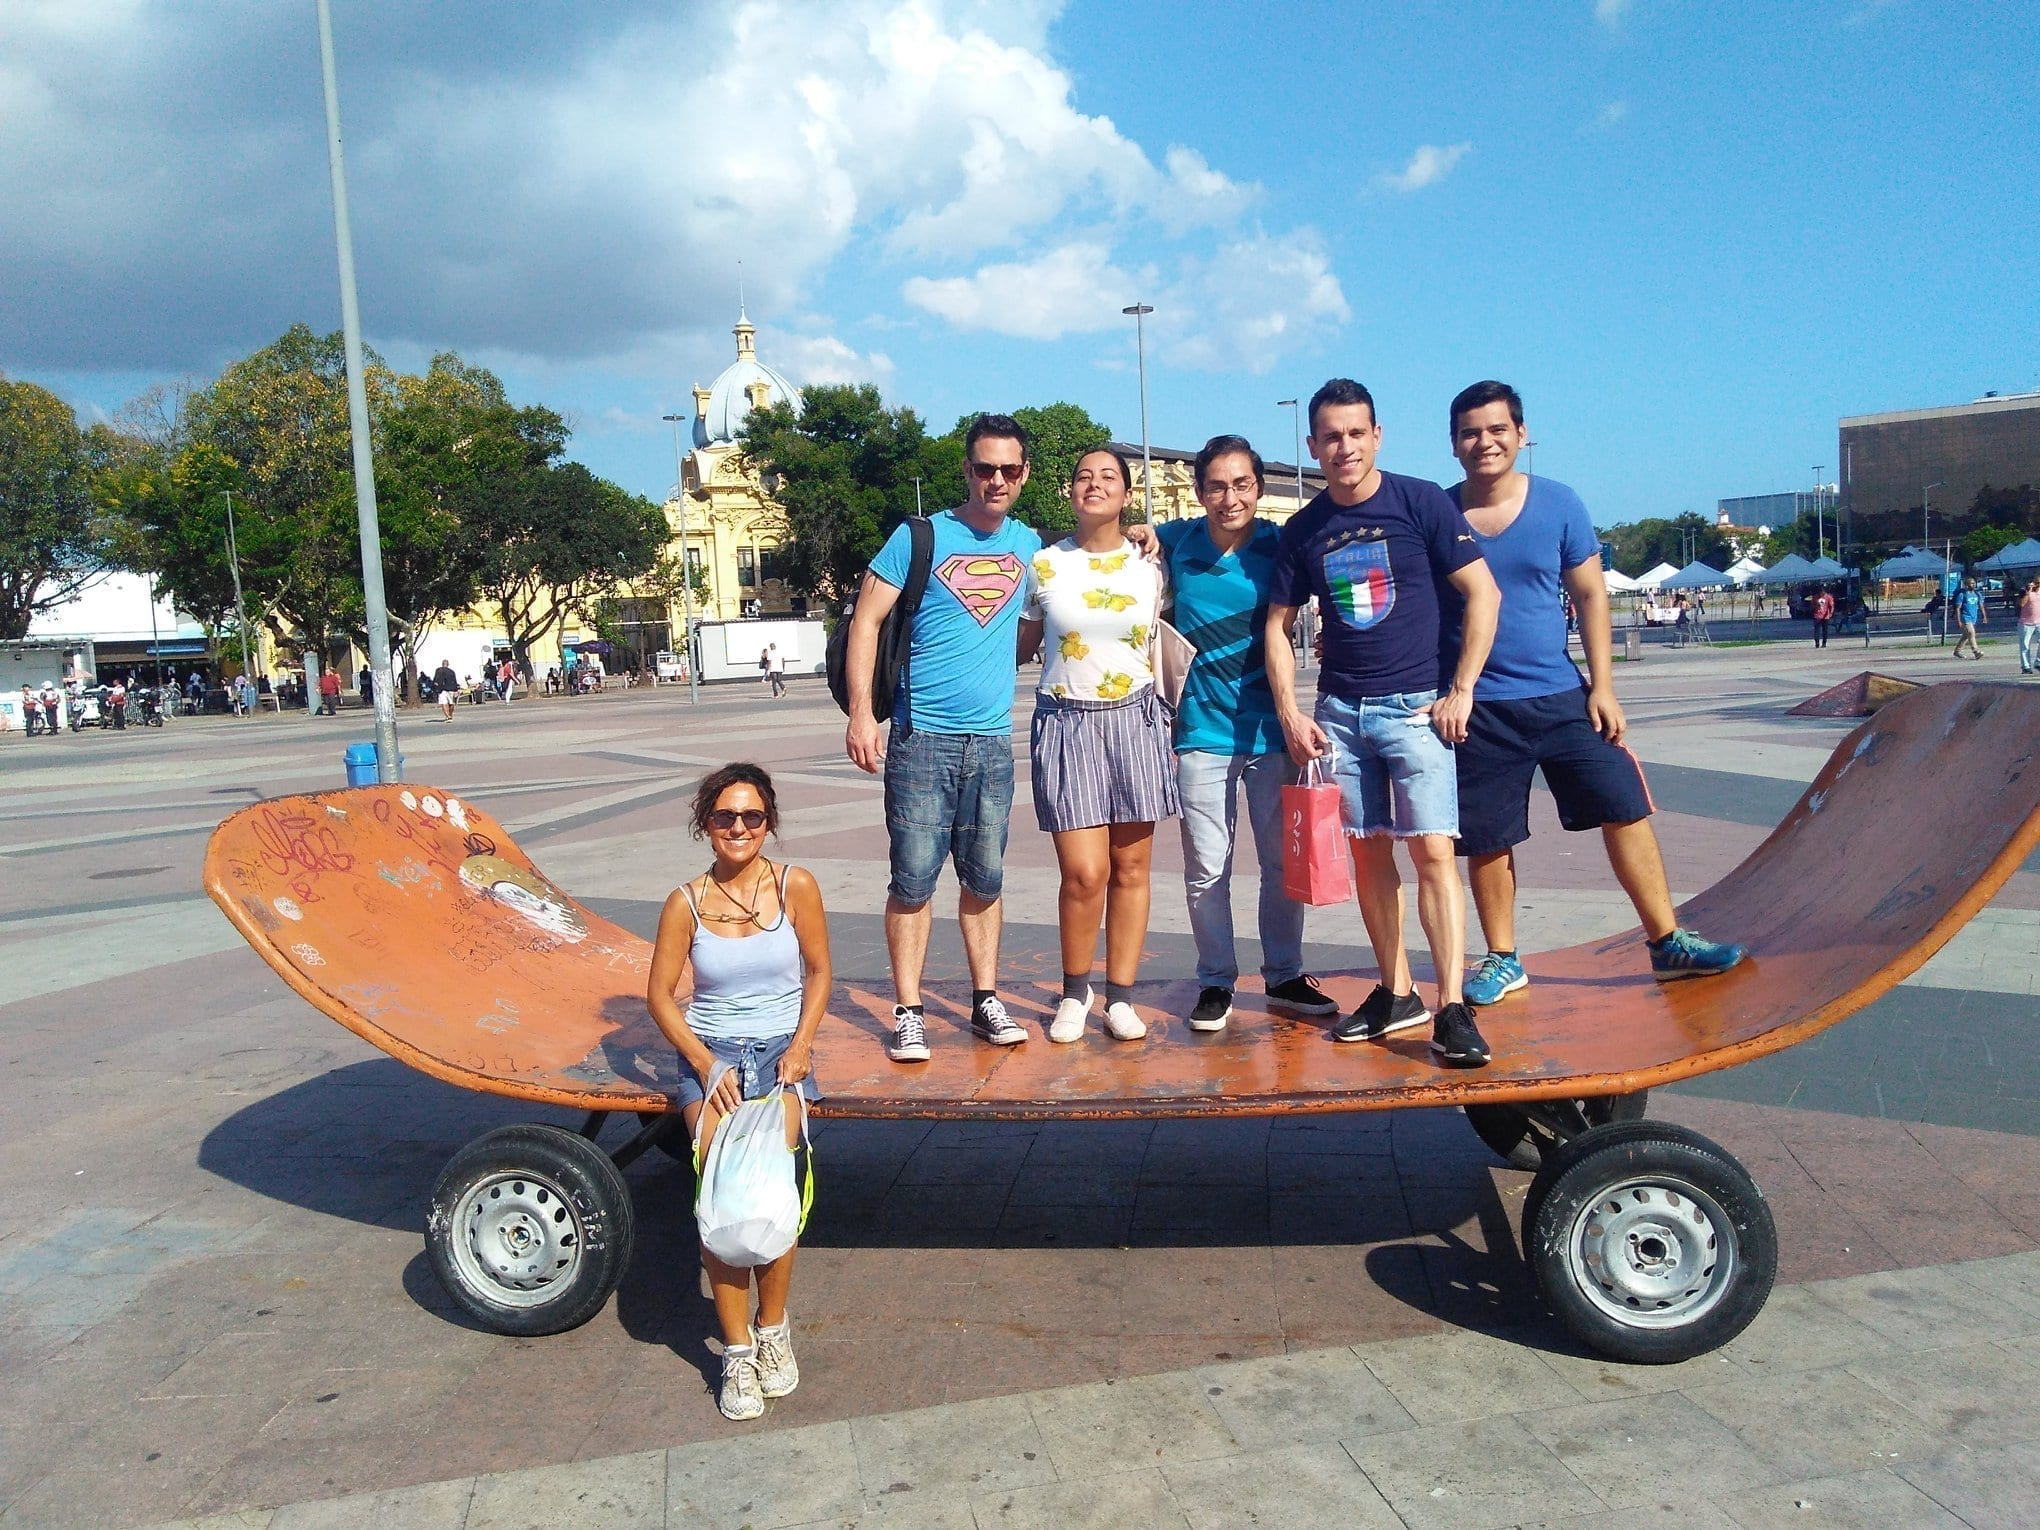 Students play in a giant skateboard and Knowing the Centro of Rio de Janeiro, praça XV